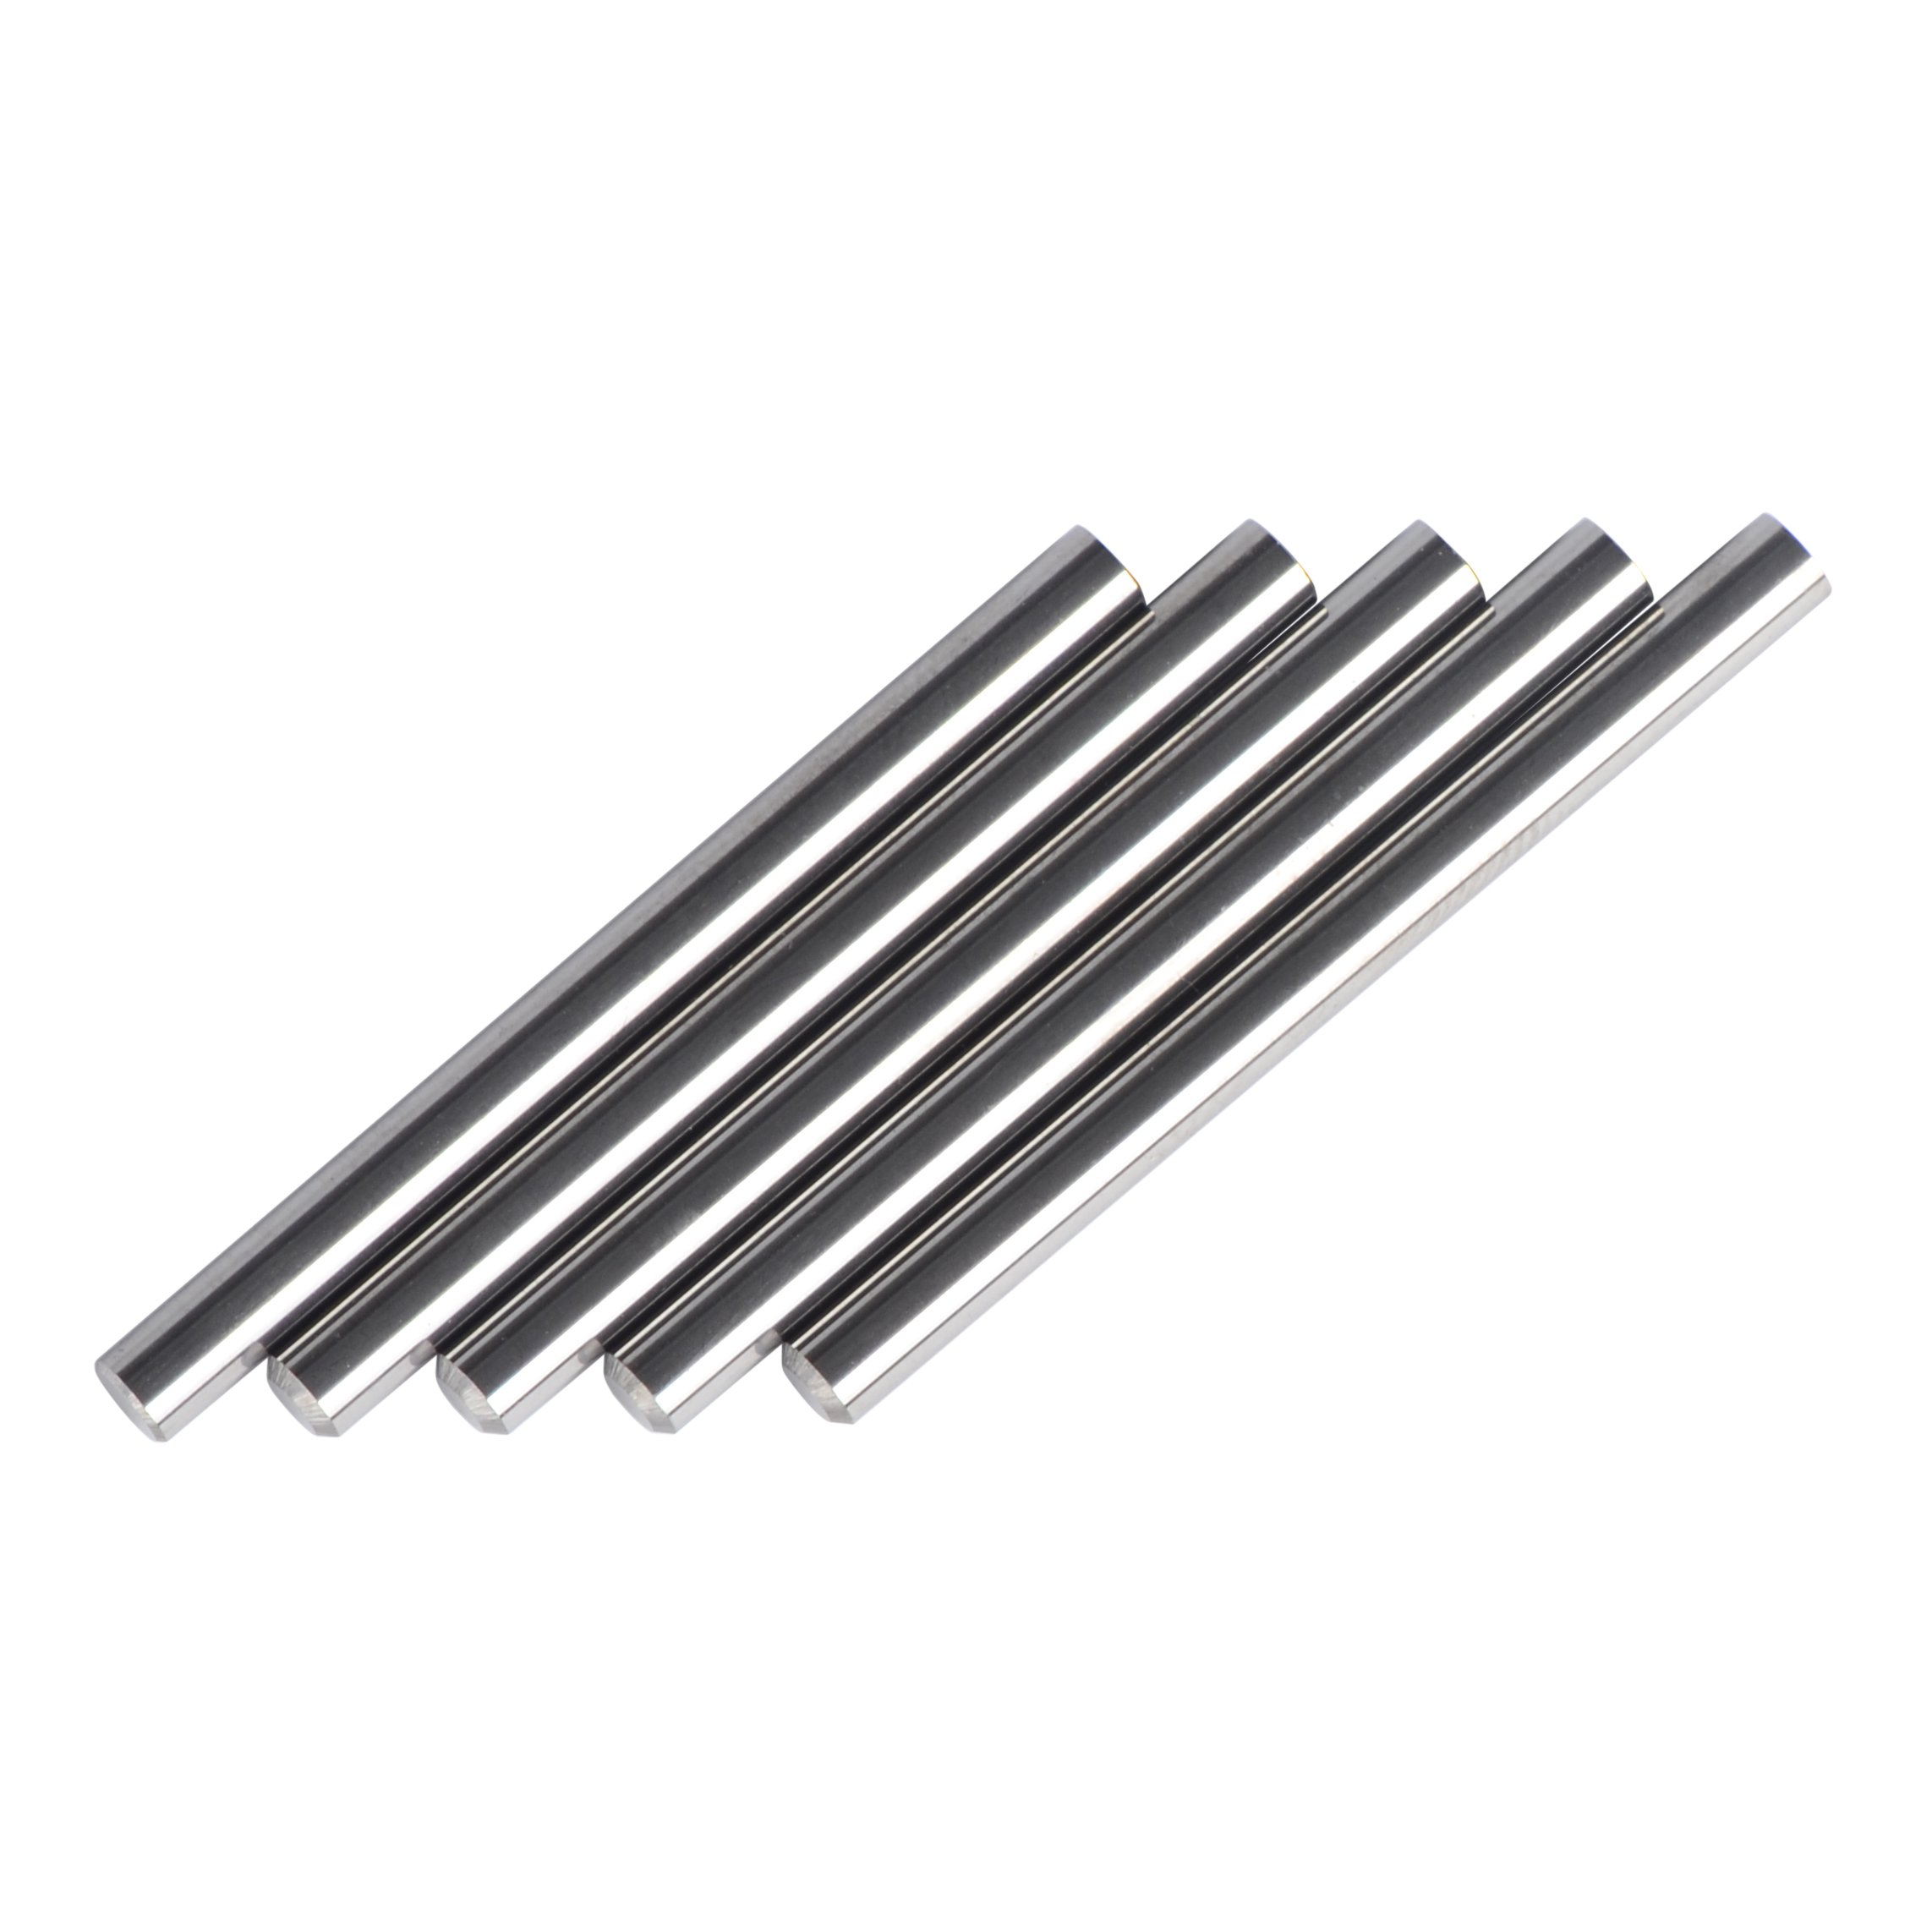 NCC Carbide Rod 1/8 Diameter and 1-1/2 Overall Length YK20 Ground for Routers and Drills, Pack of 5